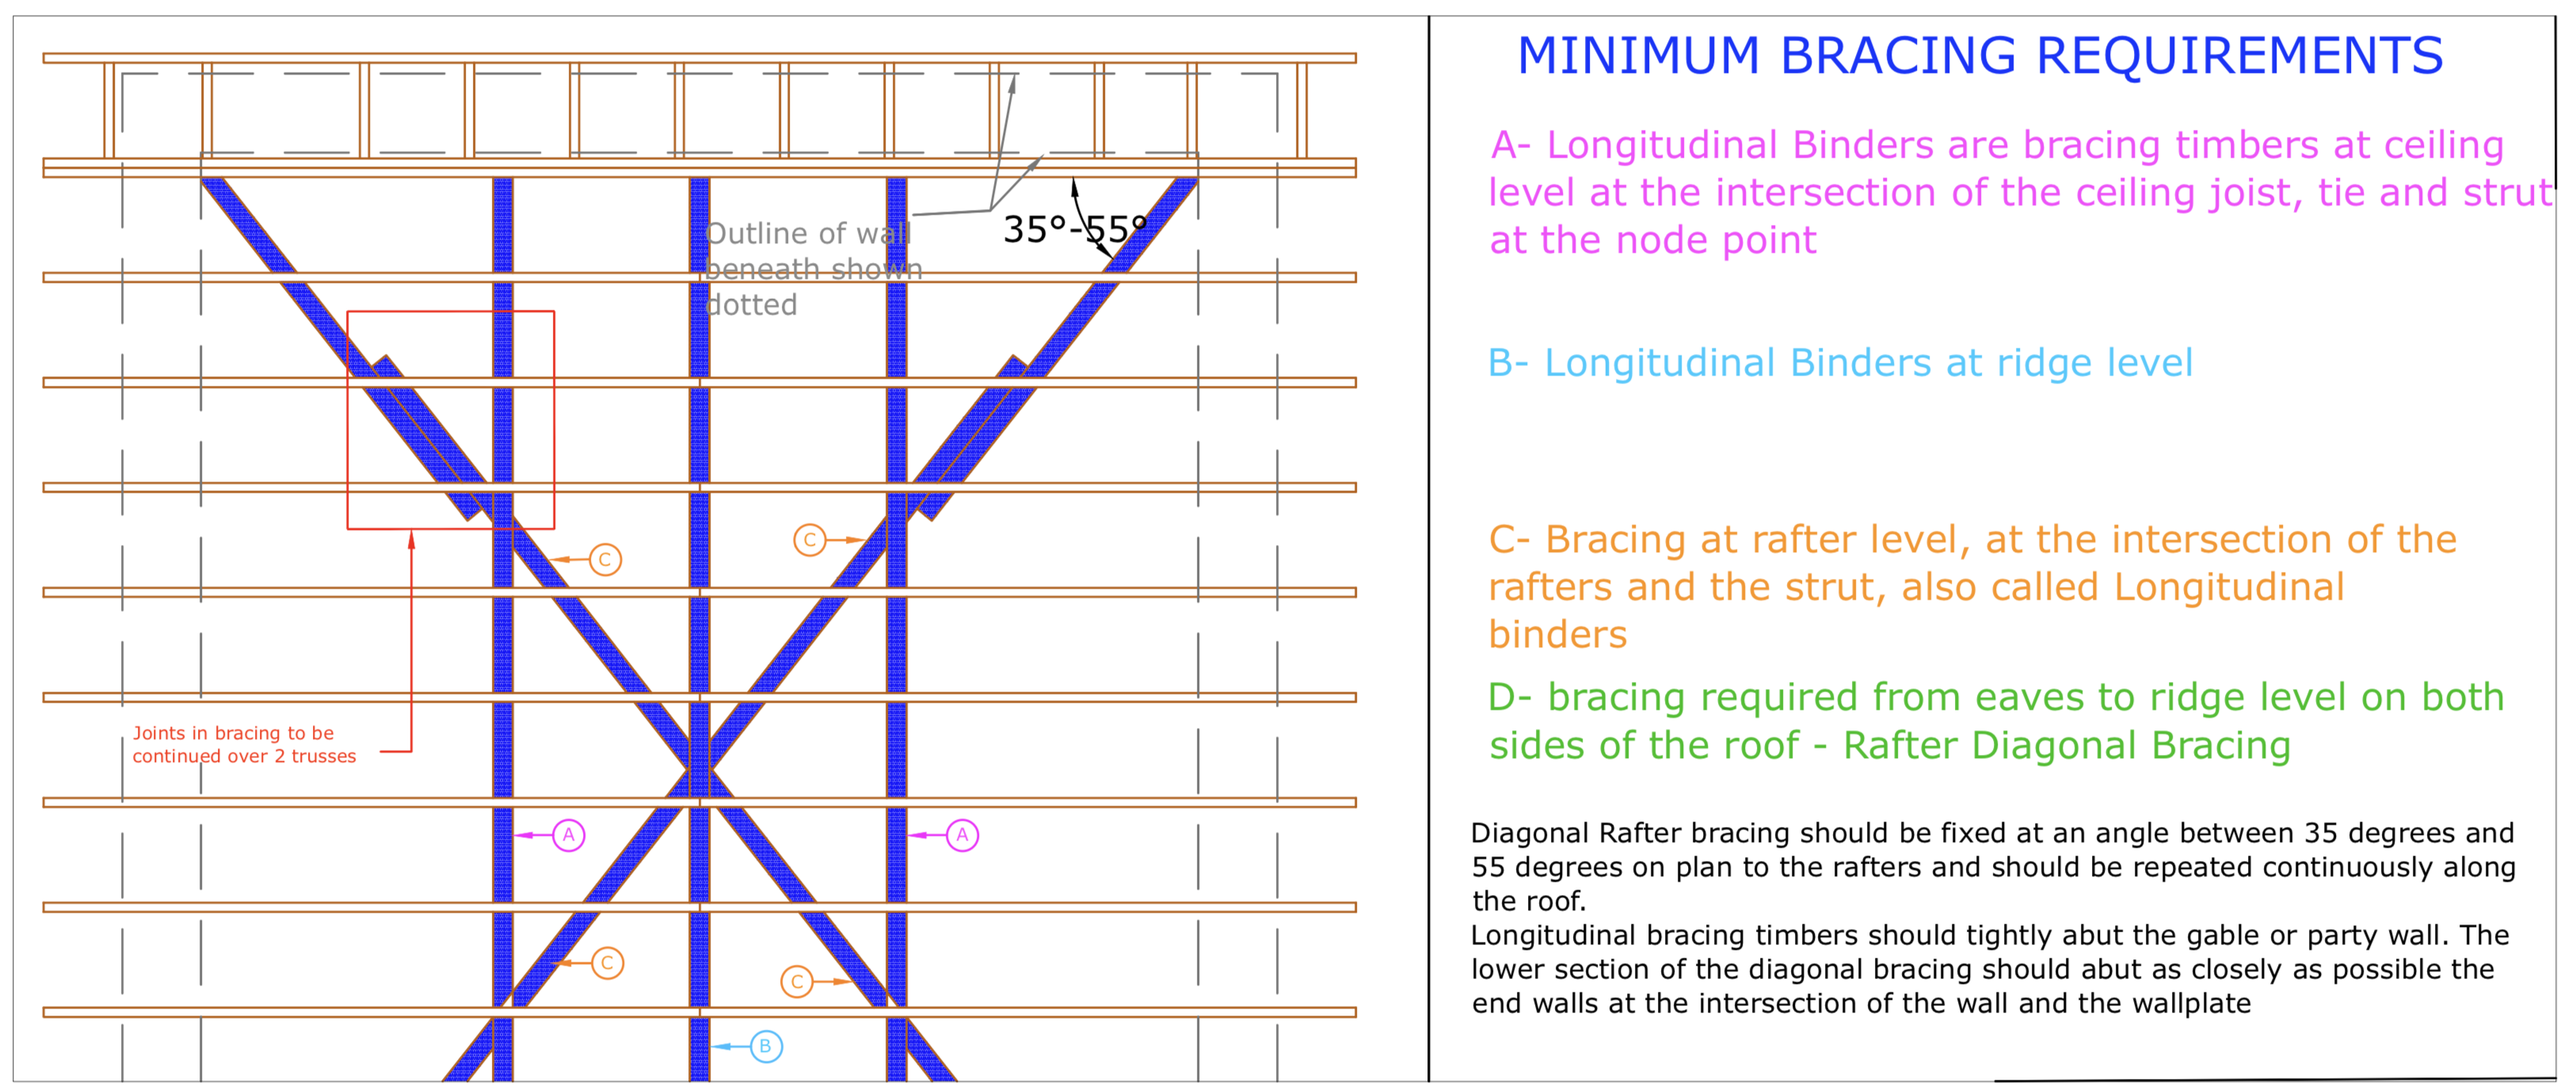 Diagram D6 - Typical detail for rafter diagonal bracing